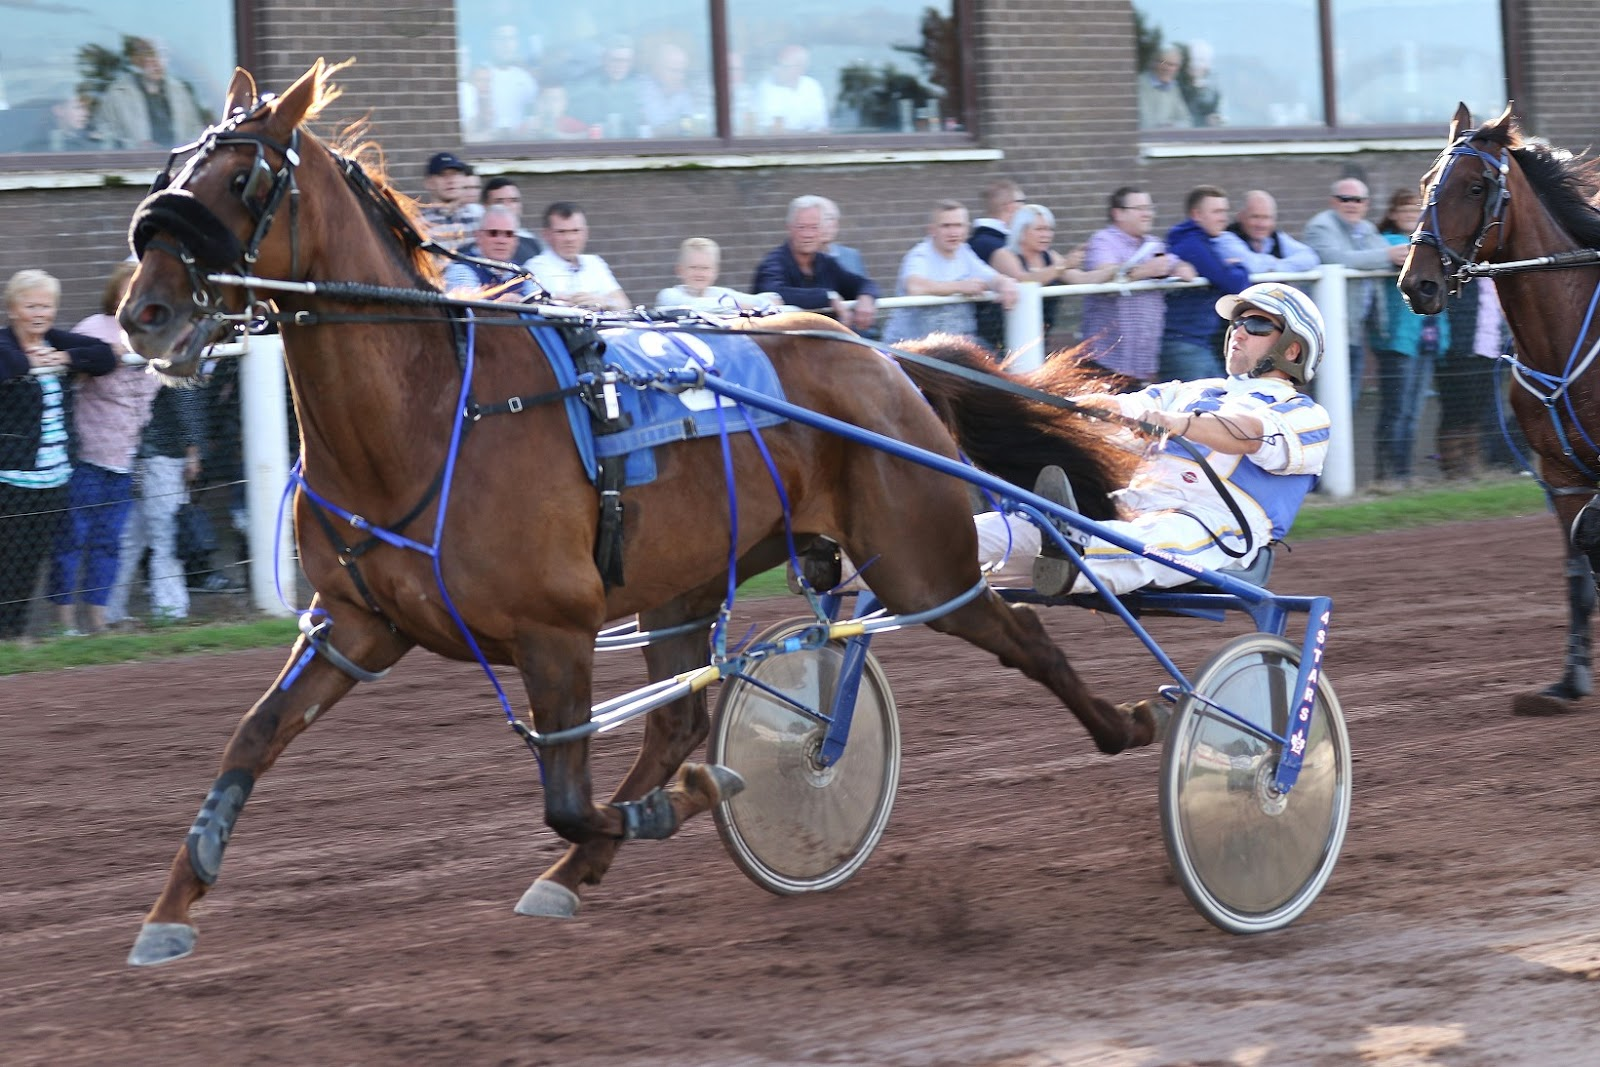 Harness Racing in the UK: September 2016